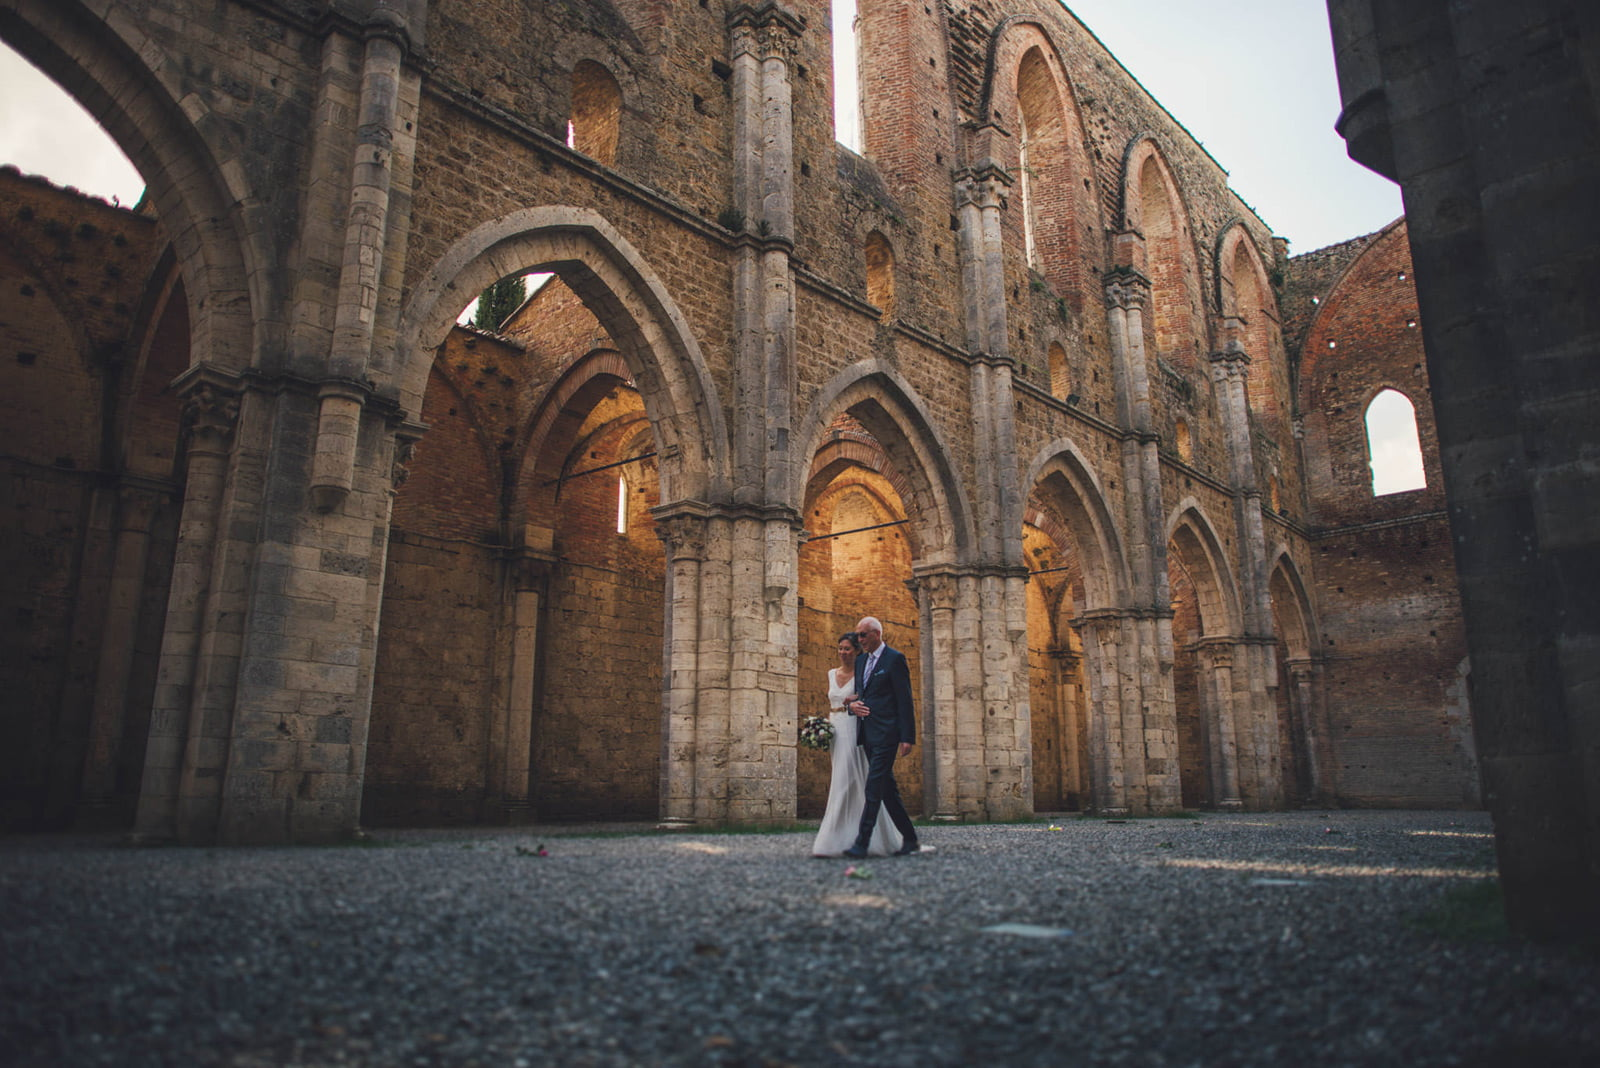 027-wedding-tuscany-san-galgano-siena-photographer